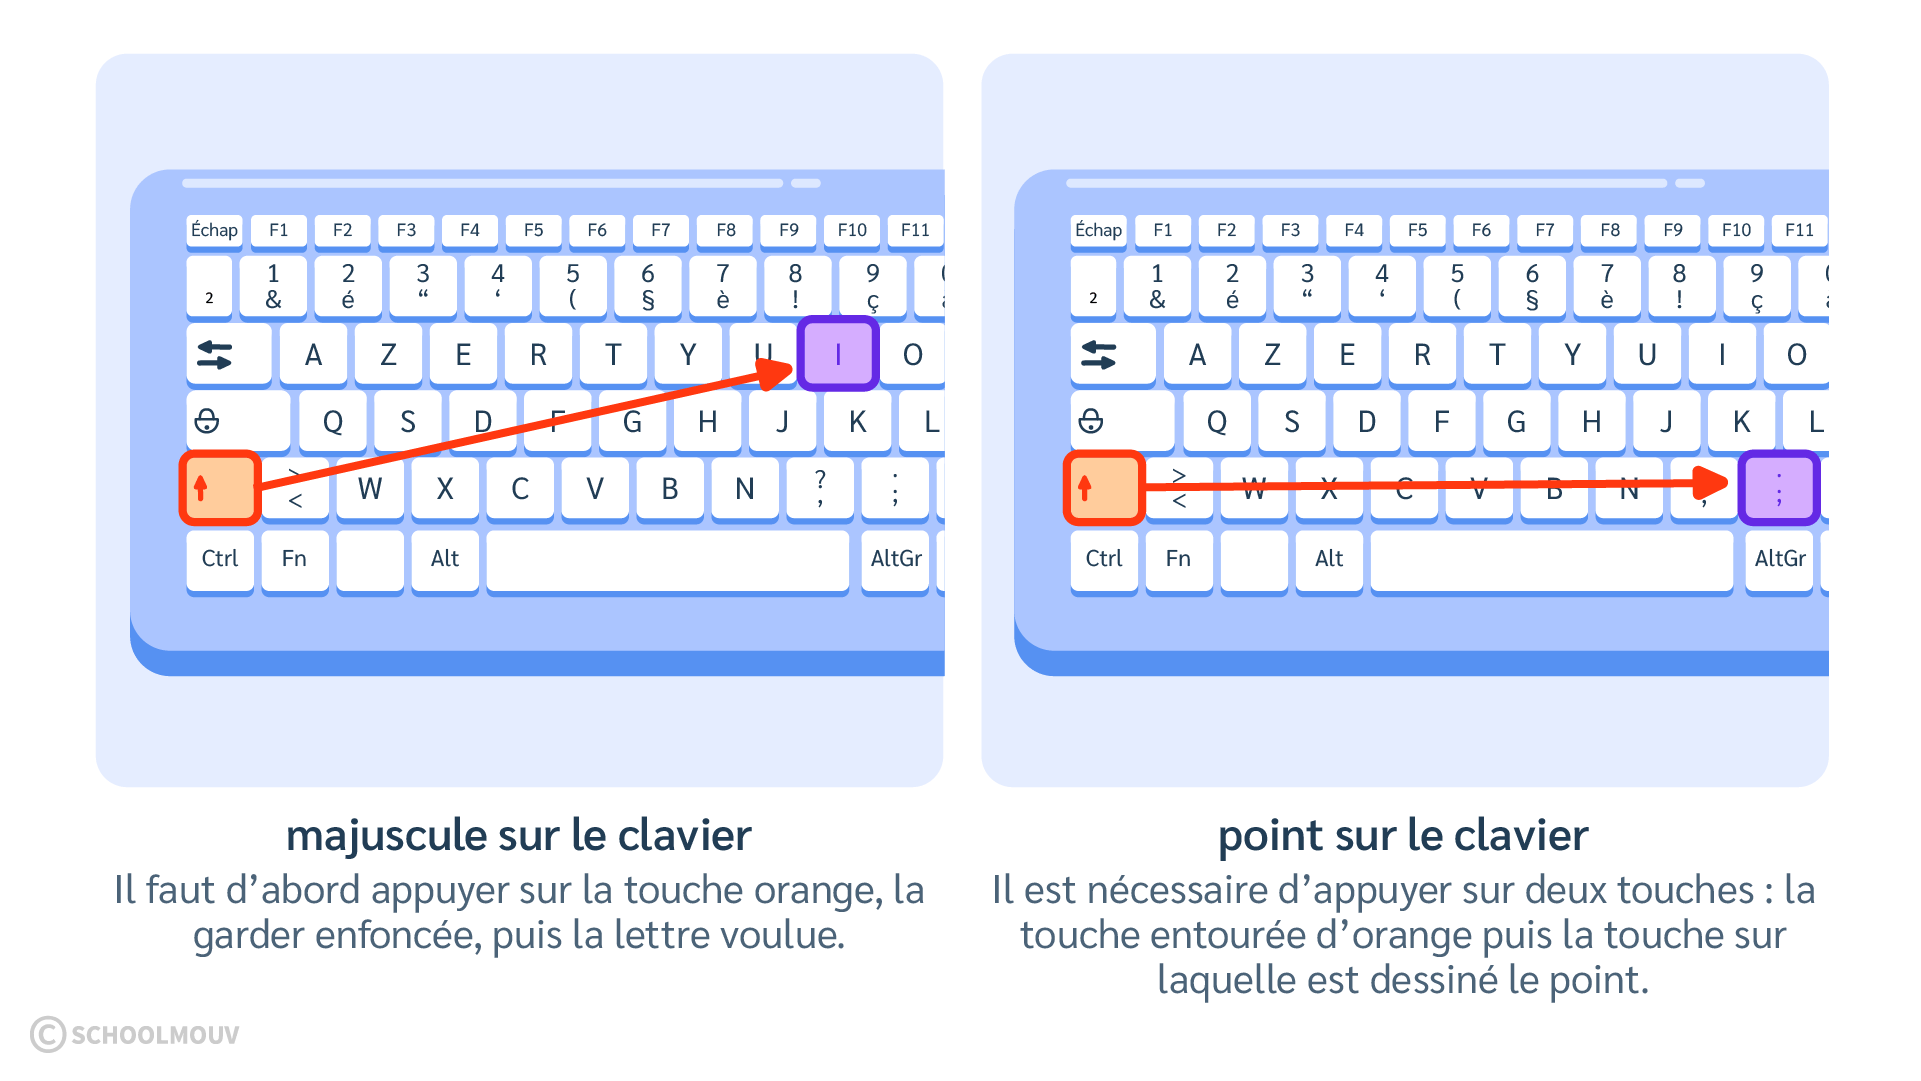 Clavier - Ordinateur - Informatique - Touches - SchoolMouv - Sciences - CP